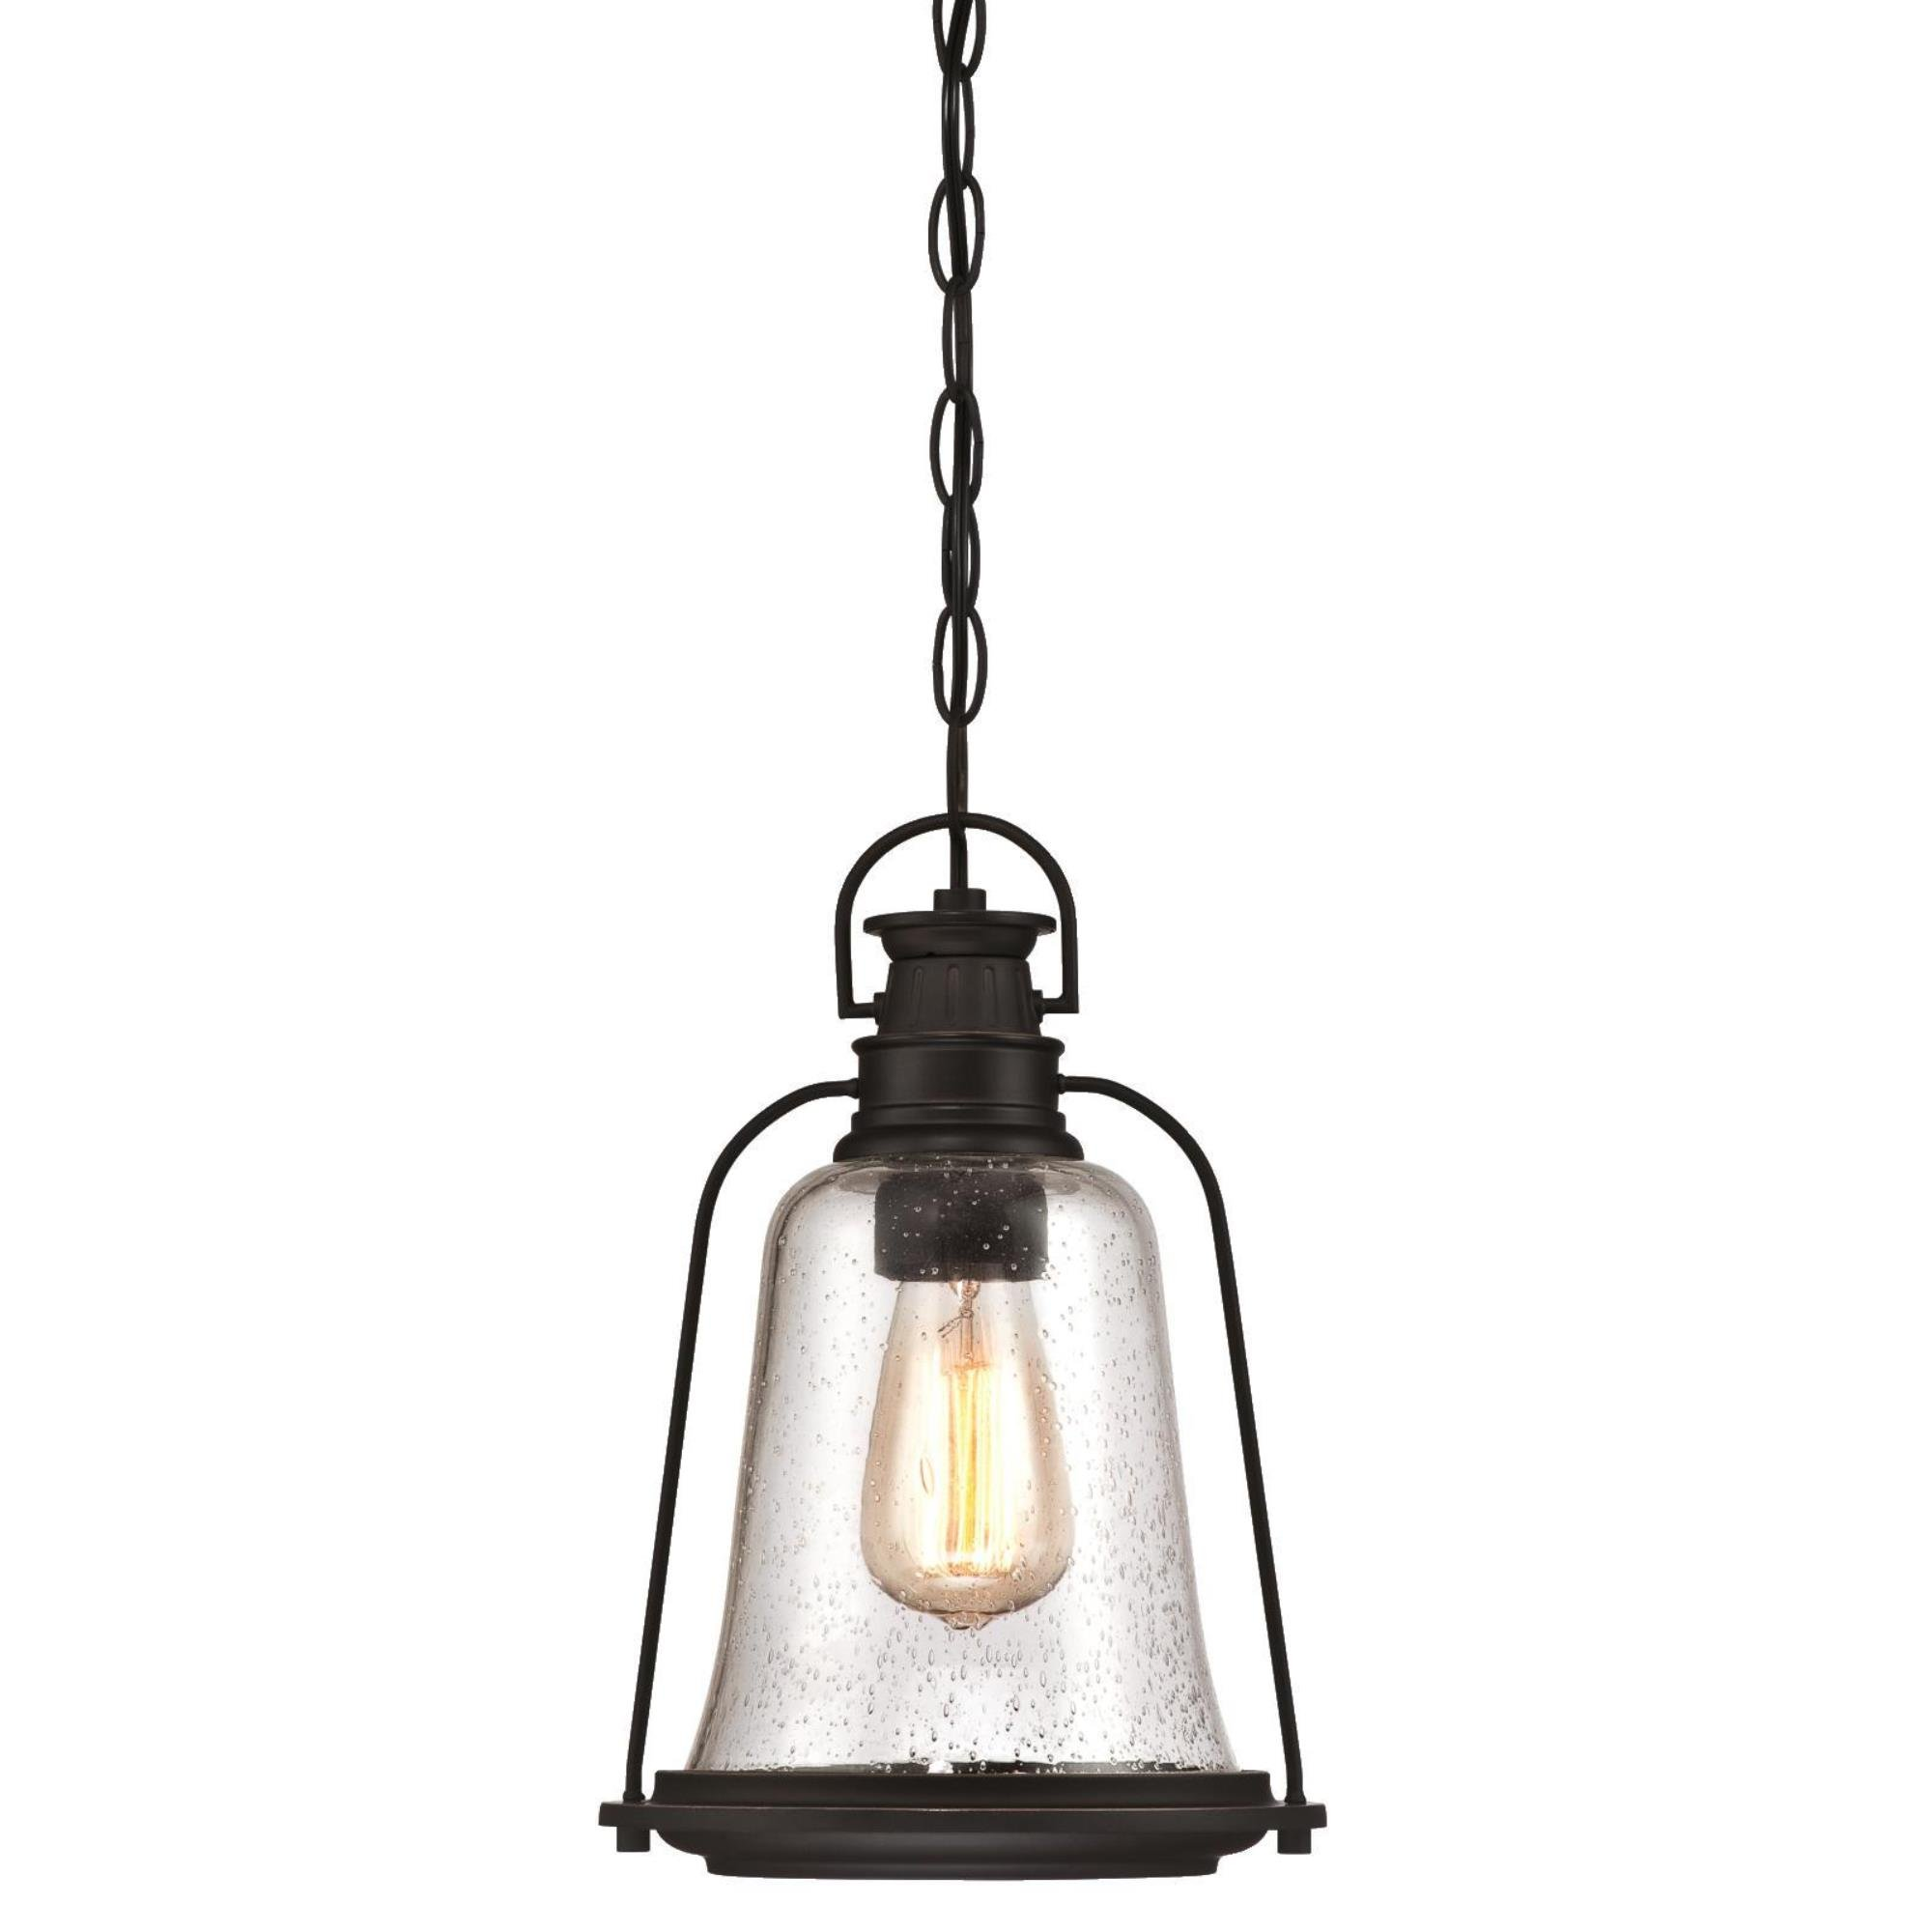 Westinghouse 6339900 Brynn One-Light Outdoor Pendant, Oil Rubbed Bronze Finish with Highlights and Clear Seeded Glass by Westinghouse